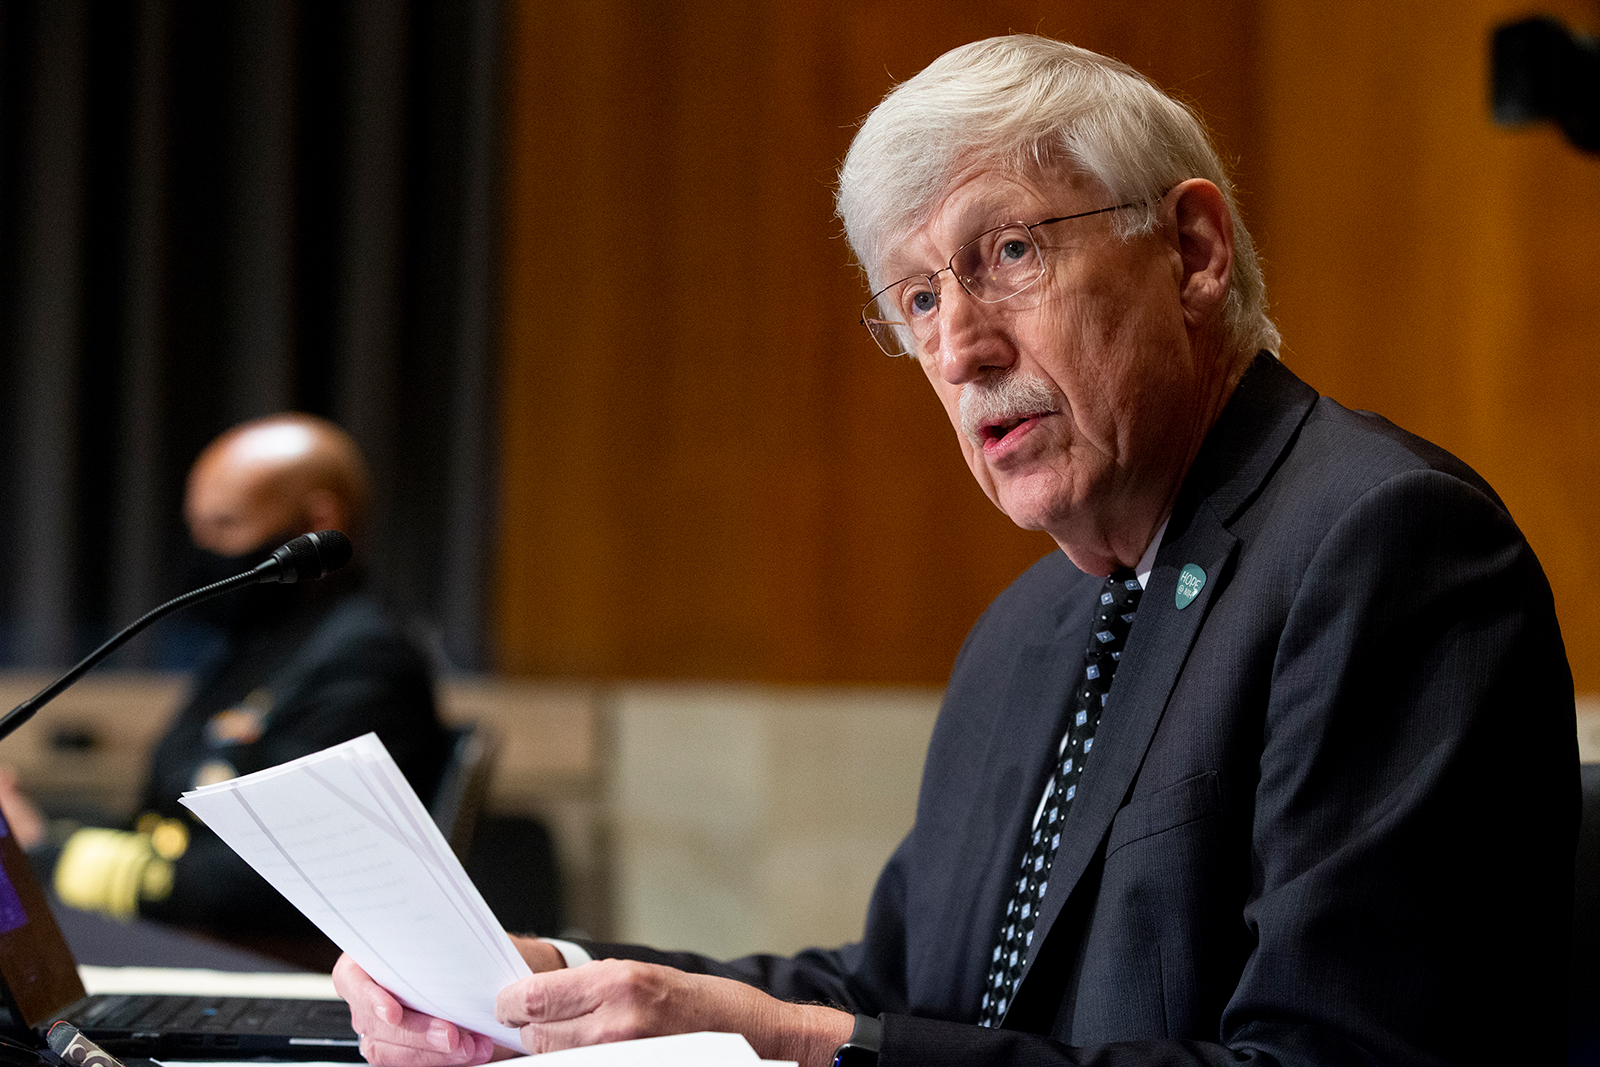 Dr. Francis Collins listens during a Senate Health, Education, Labor, and Pensions Committee hearing to discuss vaccines and protecting public health during the coronavirus pandemic in Washington DC, on Sept. 9.